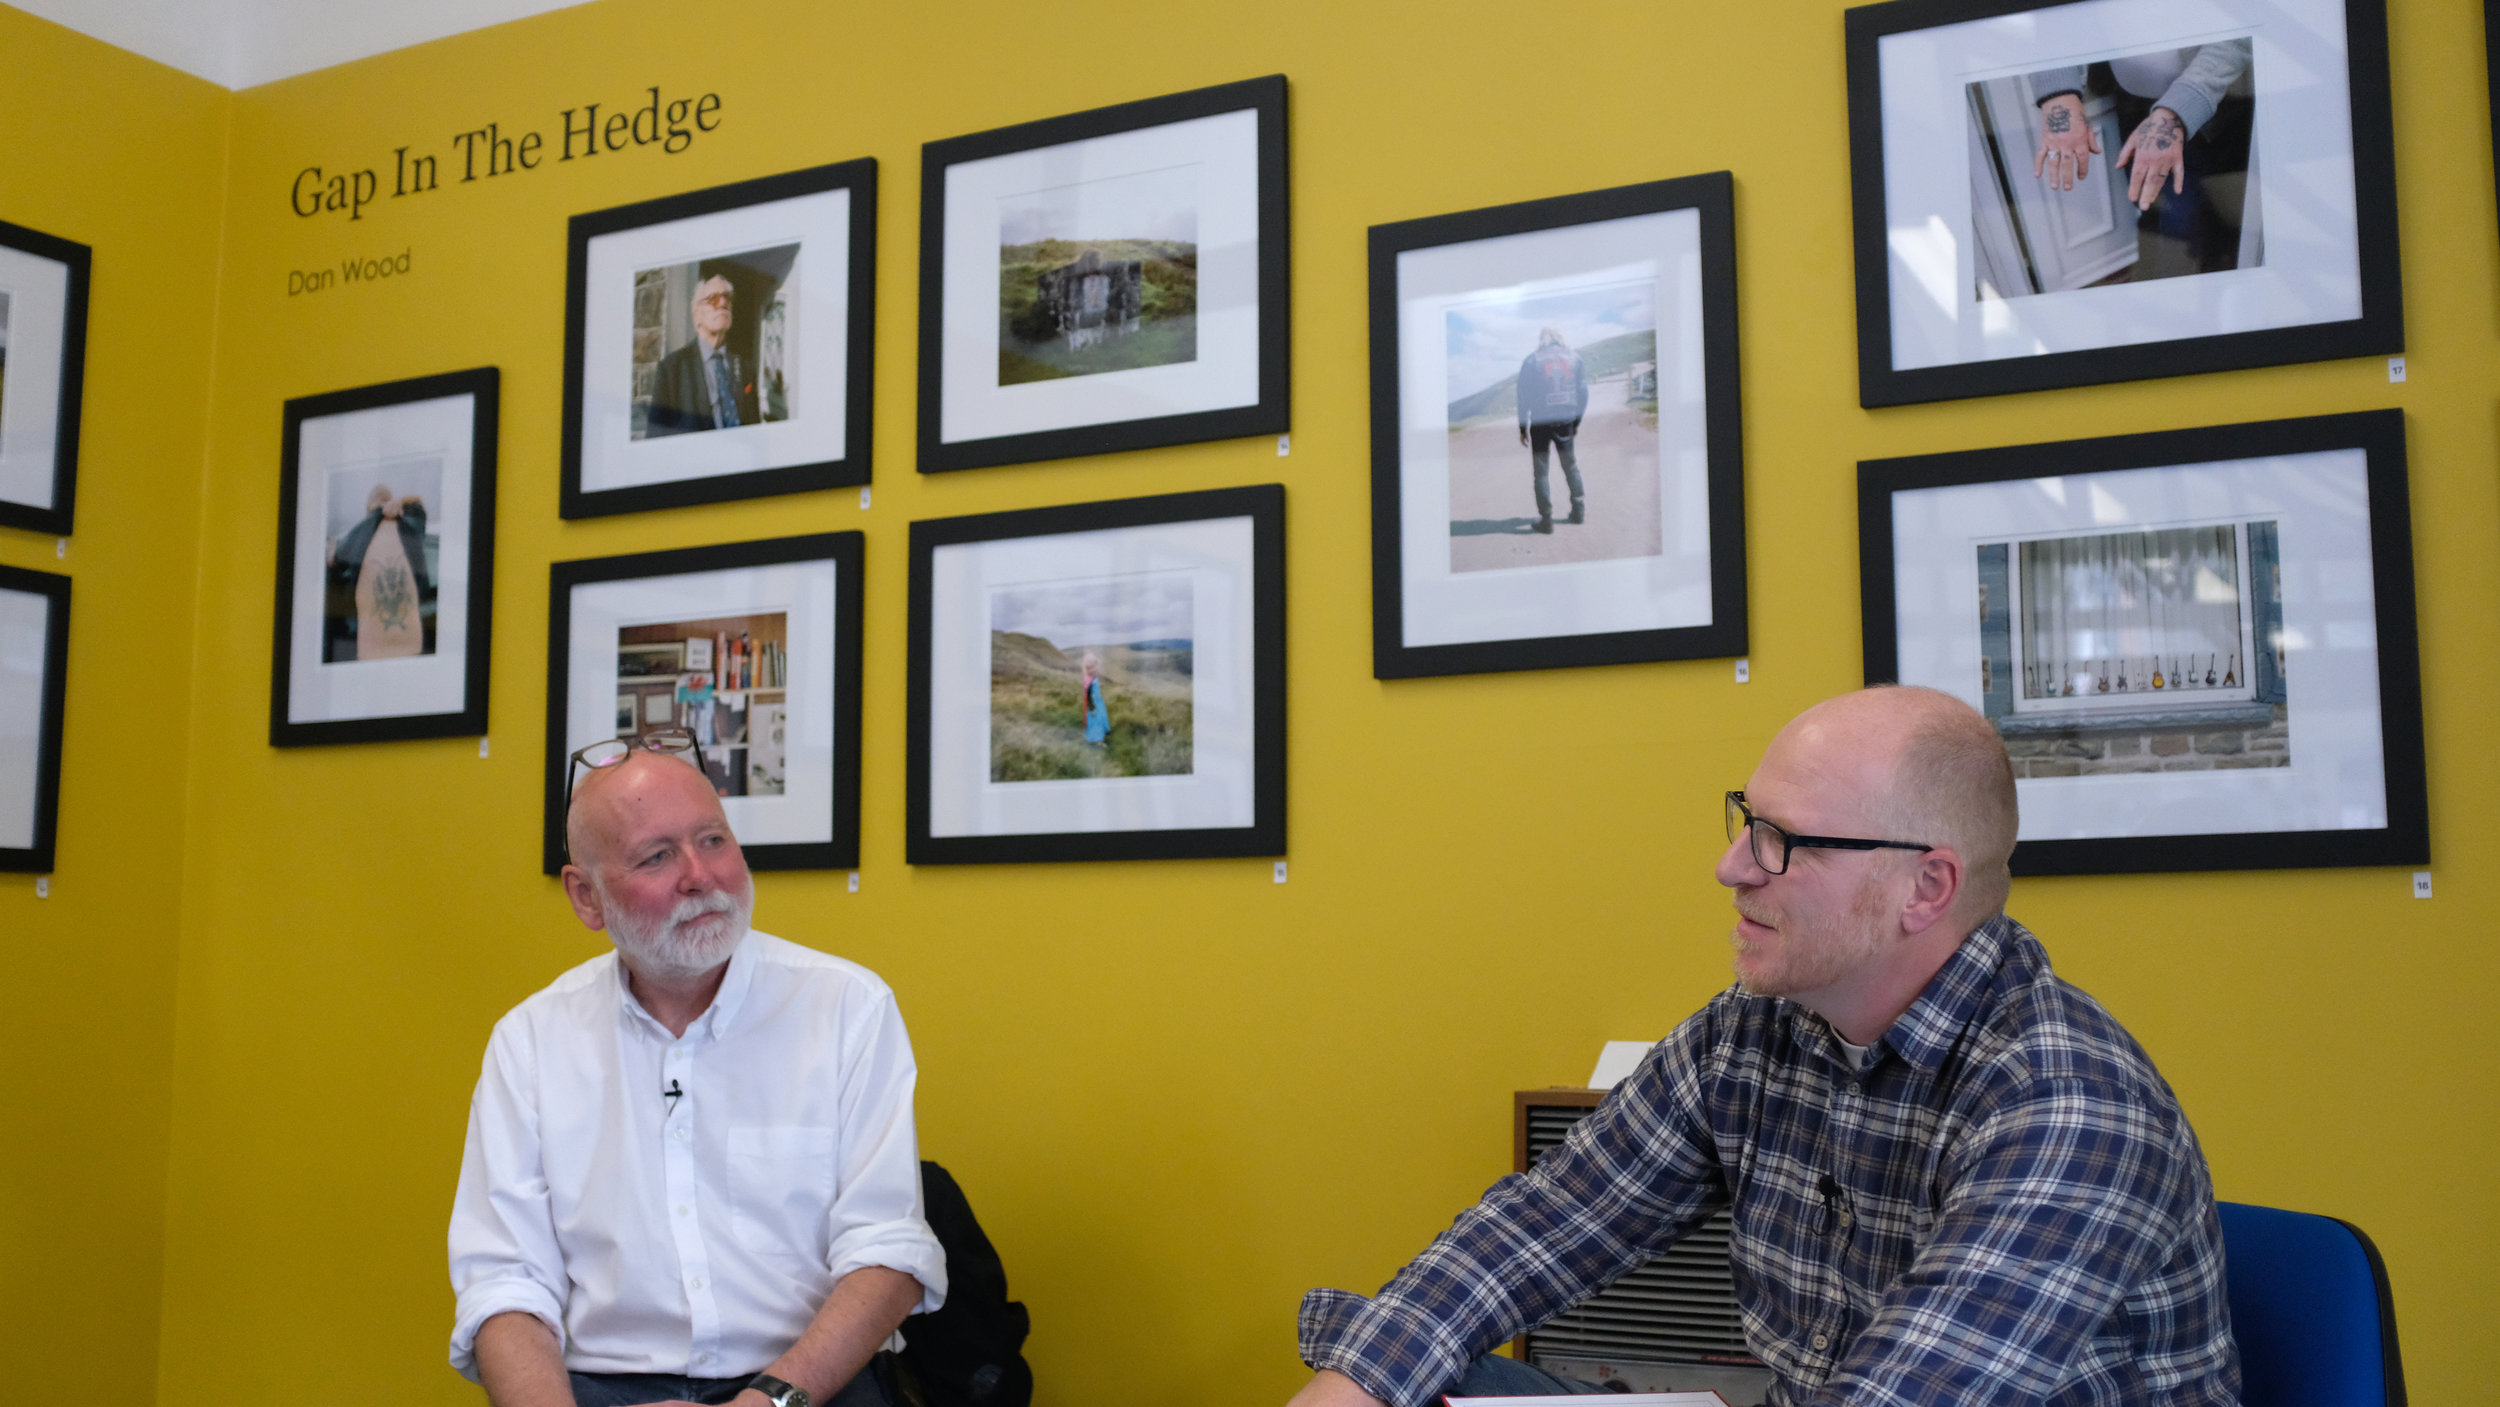 Paul Cabuts and Dan Wood in conversation - with a selection of work from 'Gap in the Hedge' on the walls around them.